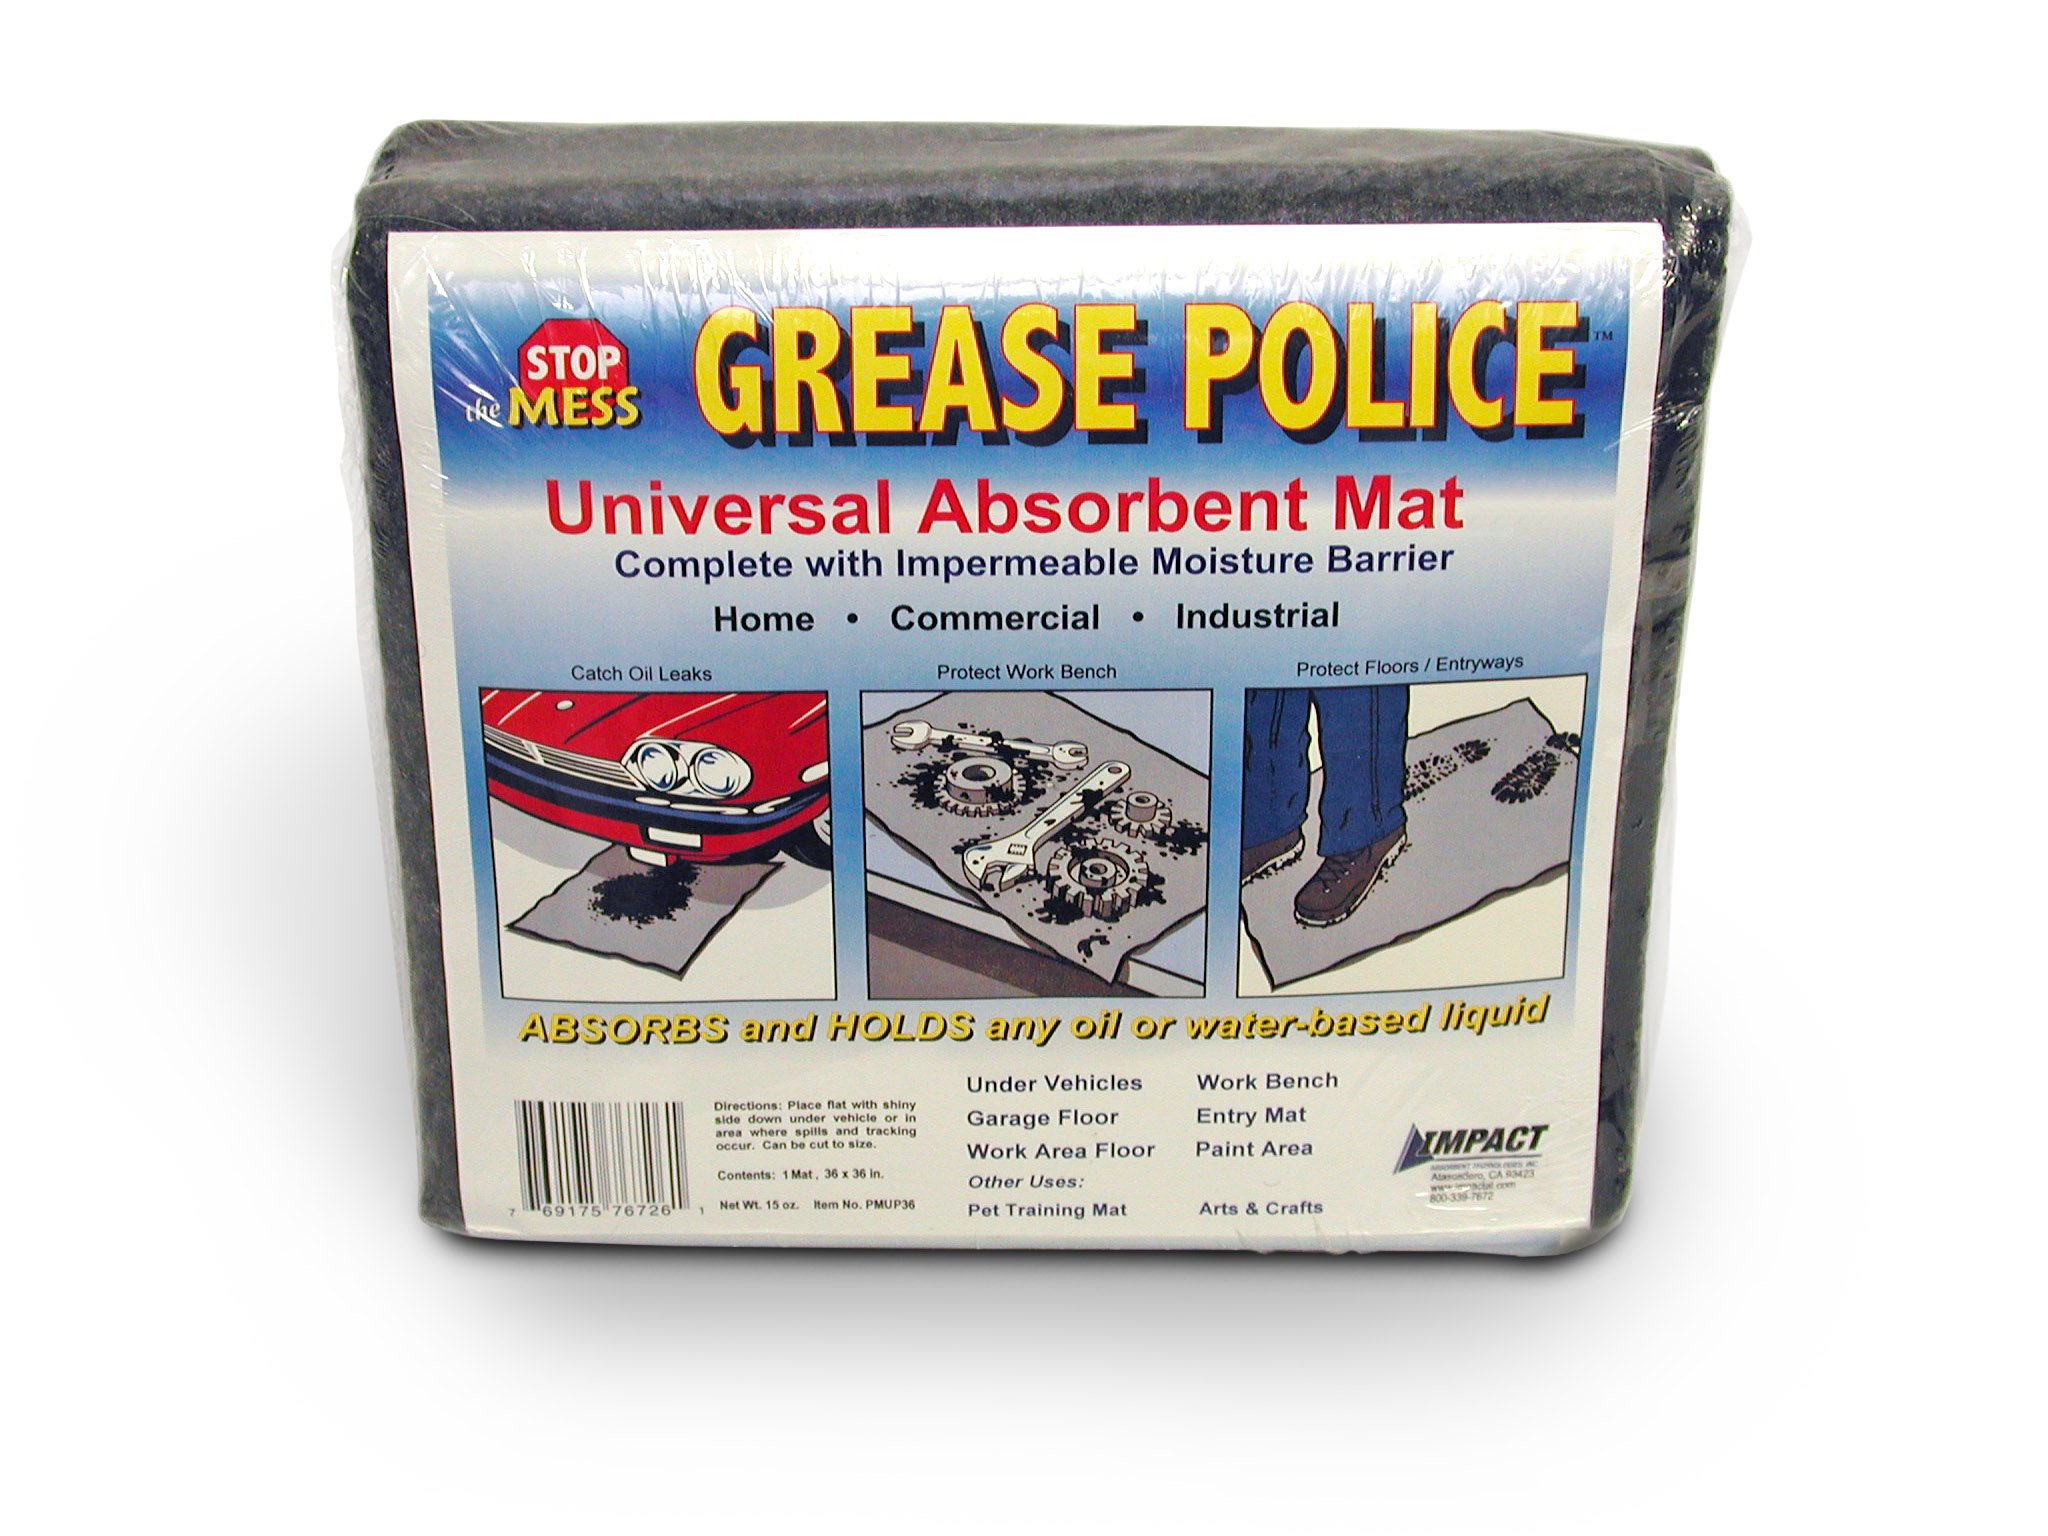 Grease Police Universal Poly-Backed Mat (Case of 6) by Impact